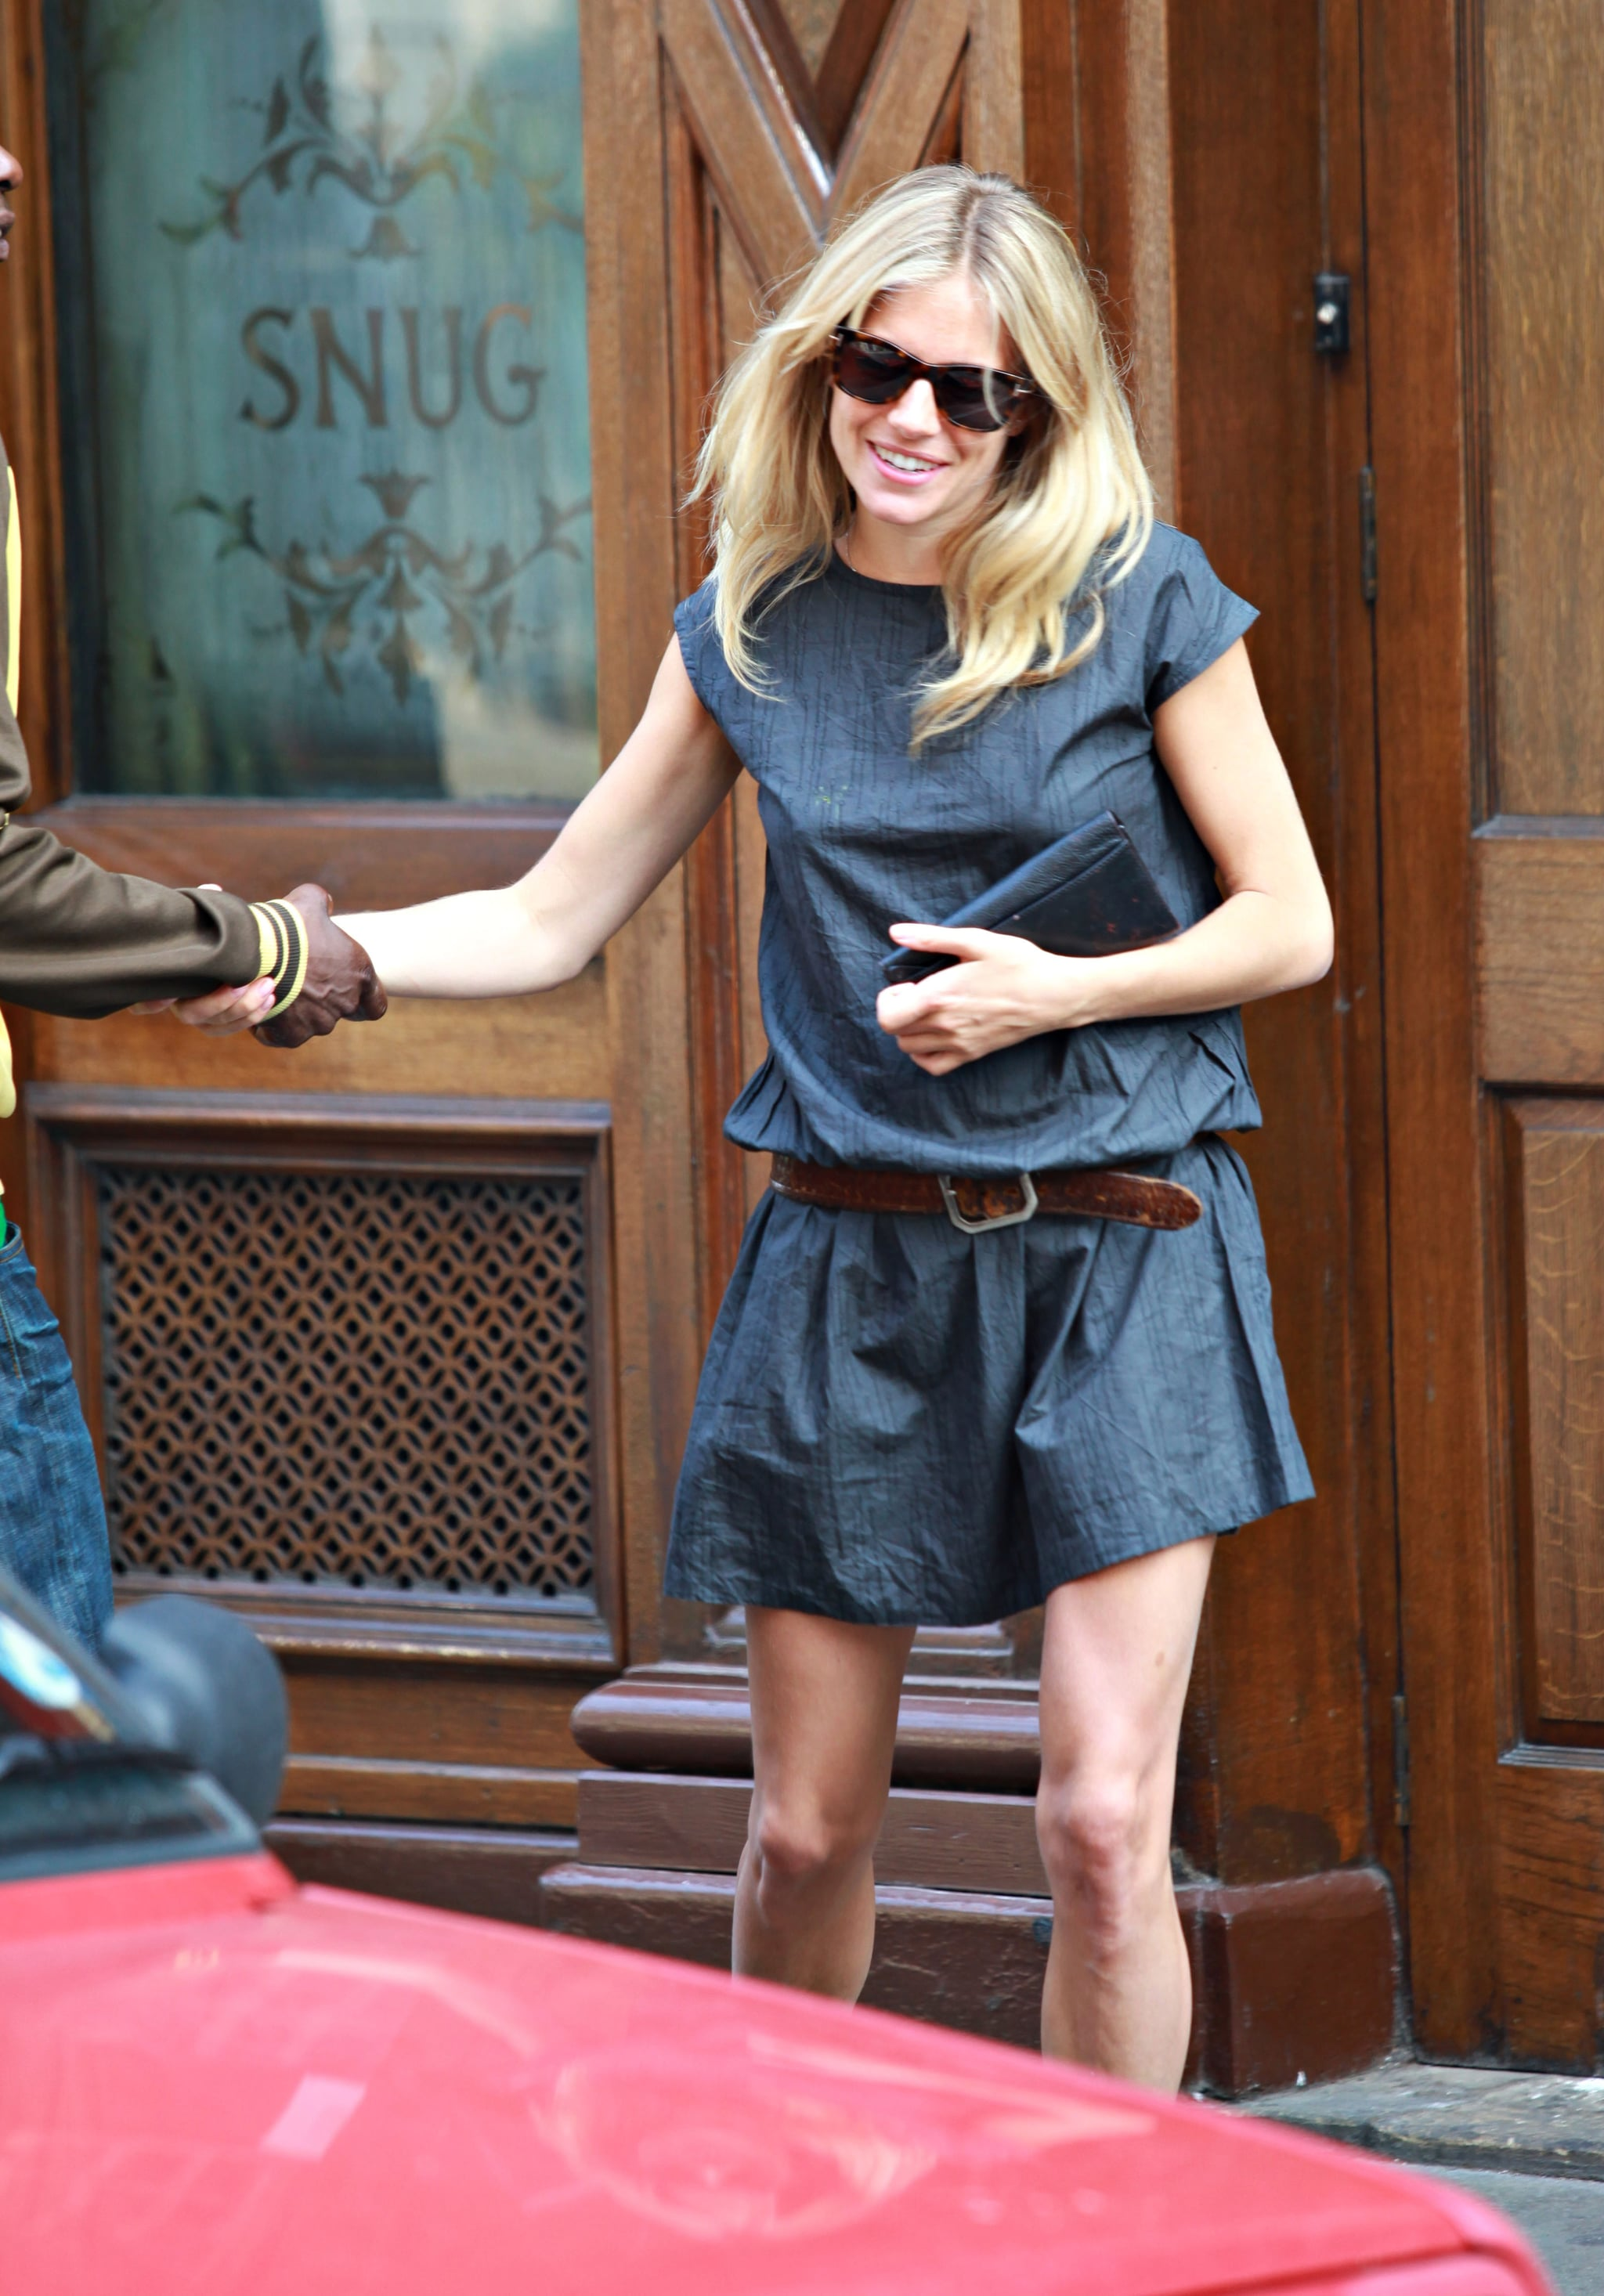 Big O Auto >> Photos of Sienna Miller Out in London at the Groucho Club | POPSUGAR Celebrity